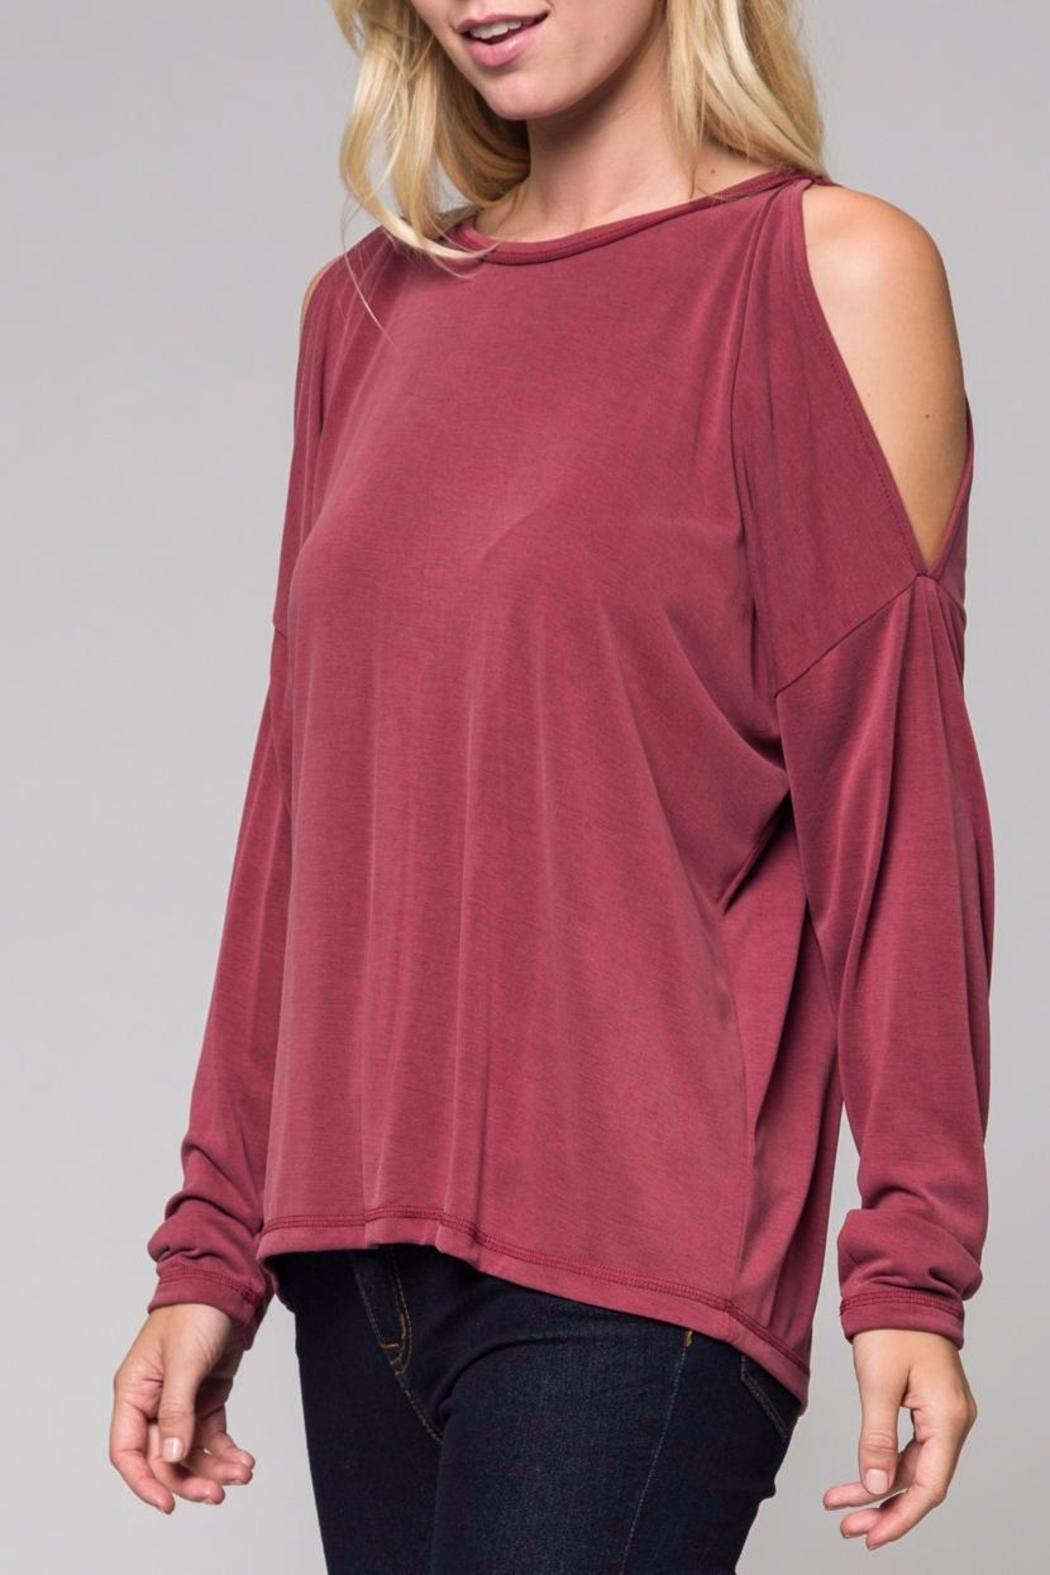 Honey Punch Rose Cold-Shoulder Top - Main Image